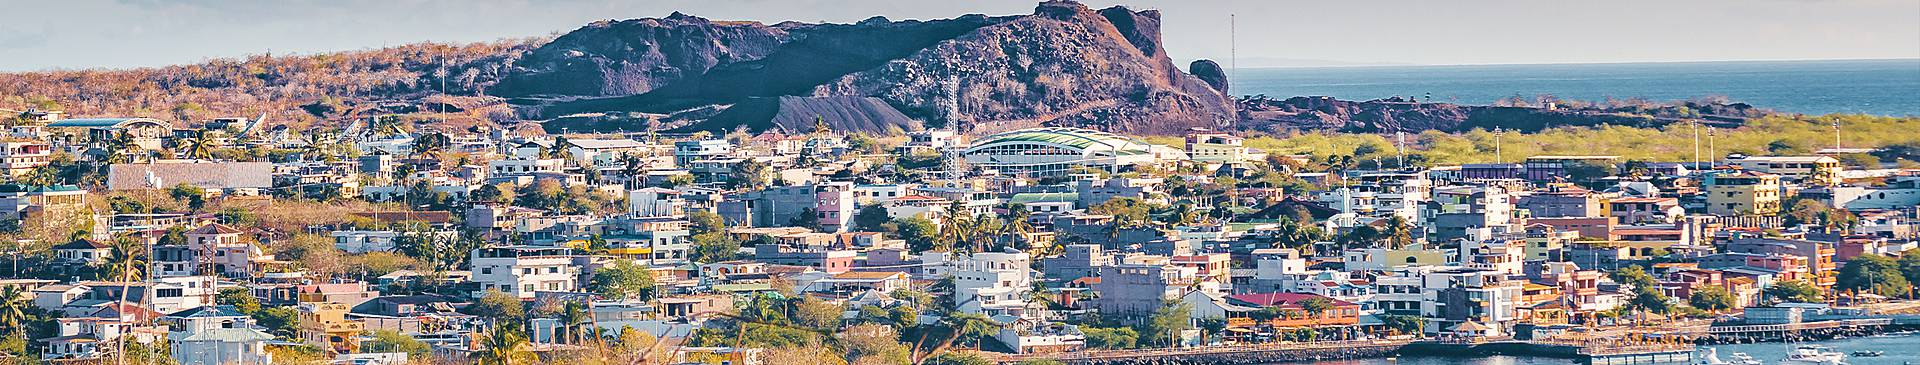 Cities in Galapagos Islands